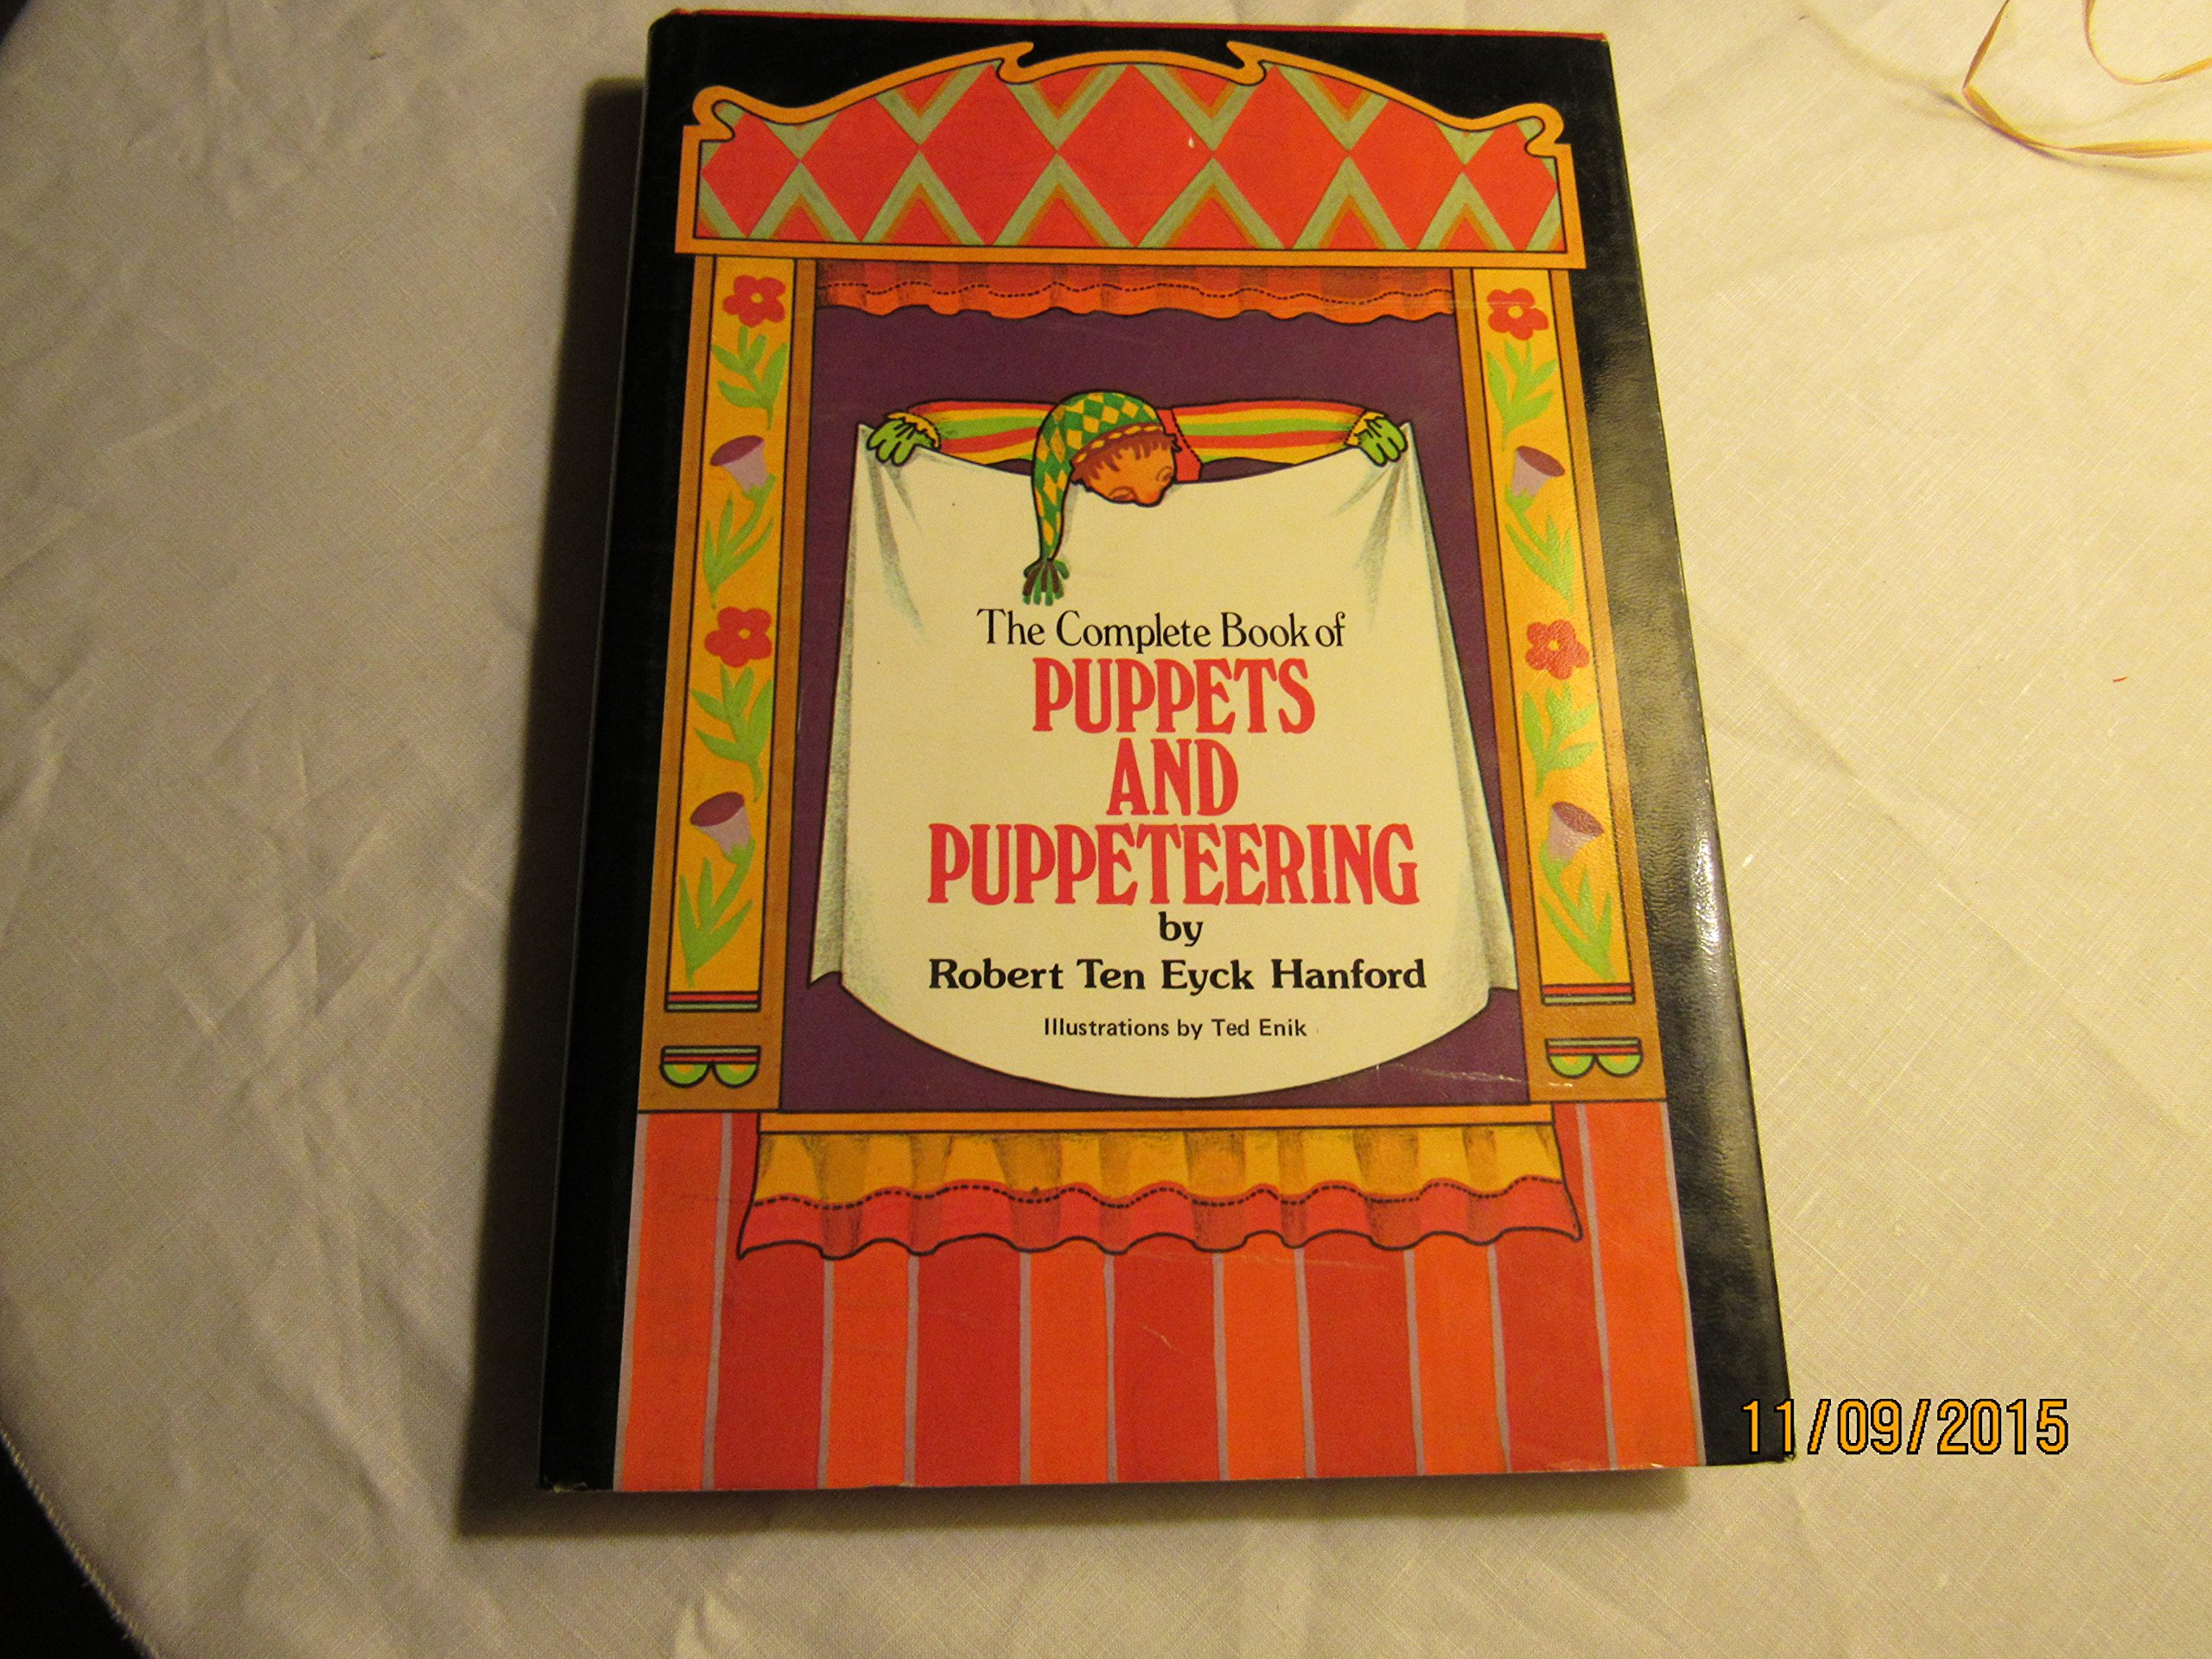 The Complete Book of Puppets and Puppeteering